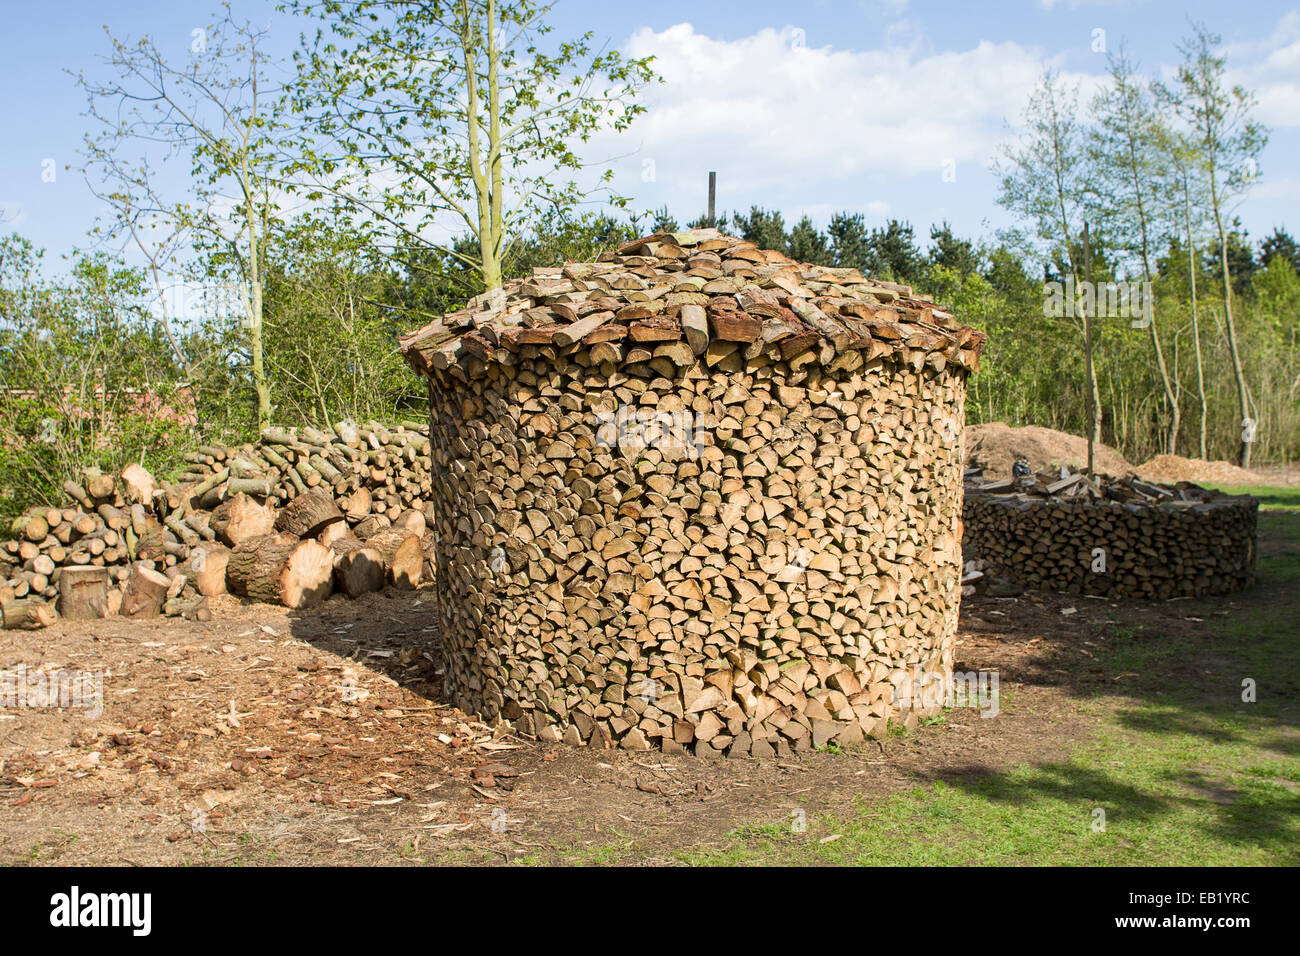 Holz Hausen Method Of Stacking Firewood To Dry Stock Photo 75646464